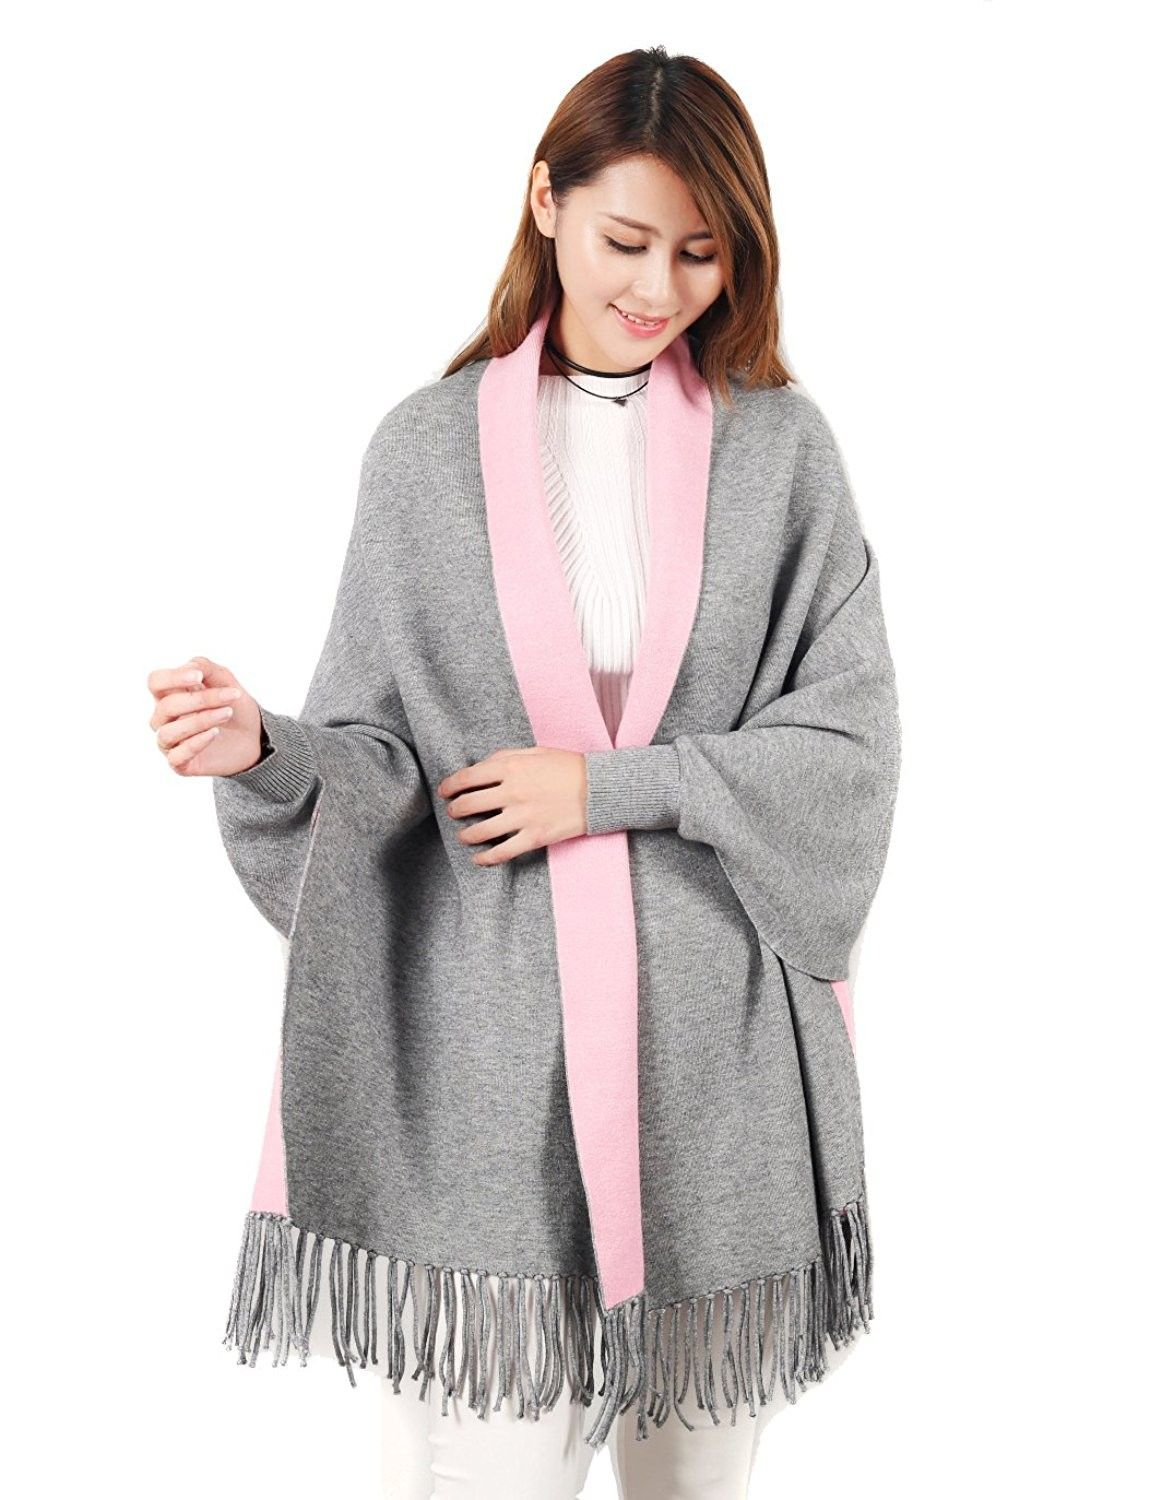 b1aa9b40ceded Women's Stylish Warm Blanket Wrap Shawl with Sleeves Scarf Neck Stole  Pashmina Reversible Poncho Coat Grey/Pink - CN187ZRDAH6 - Scarves & Wraps,  ...